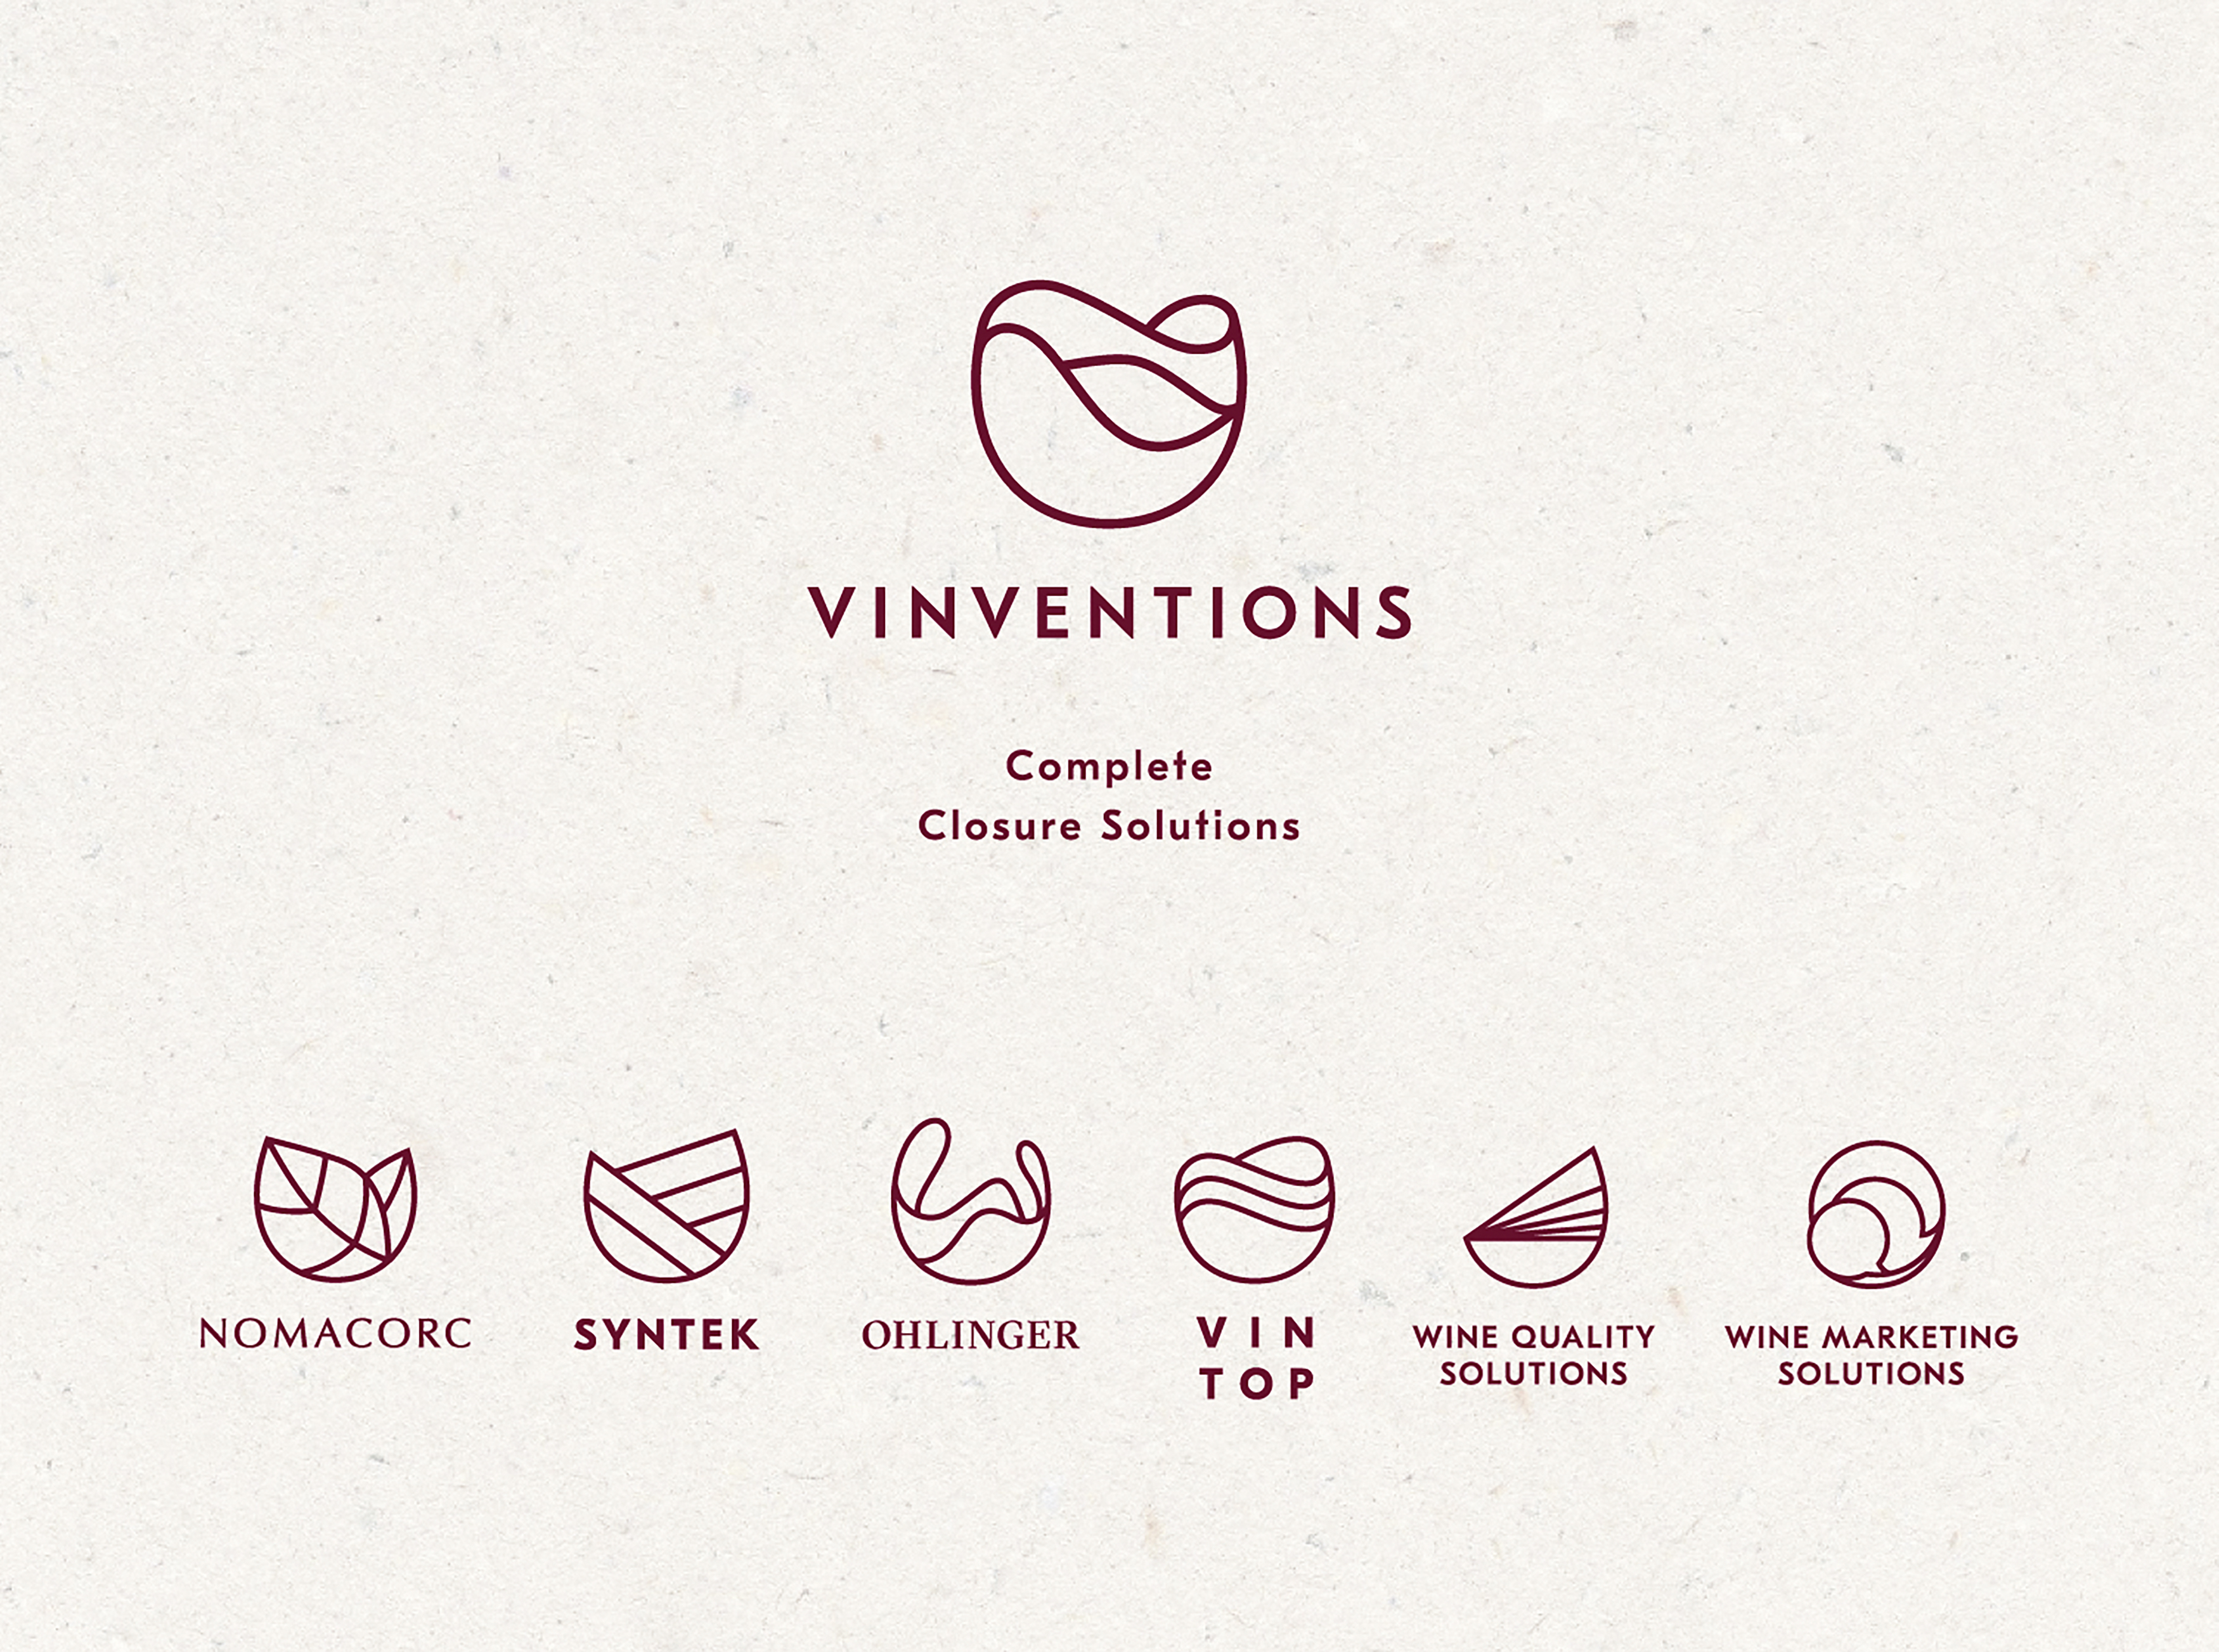 vinventions-red-dot-designs